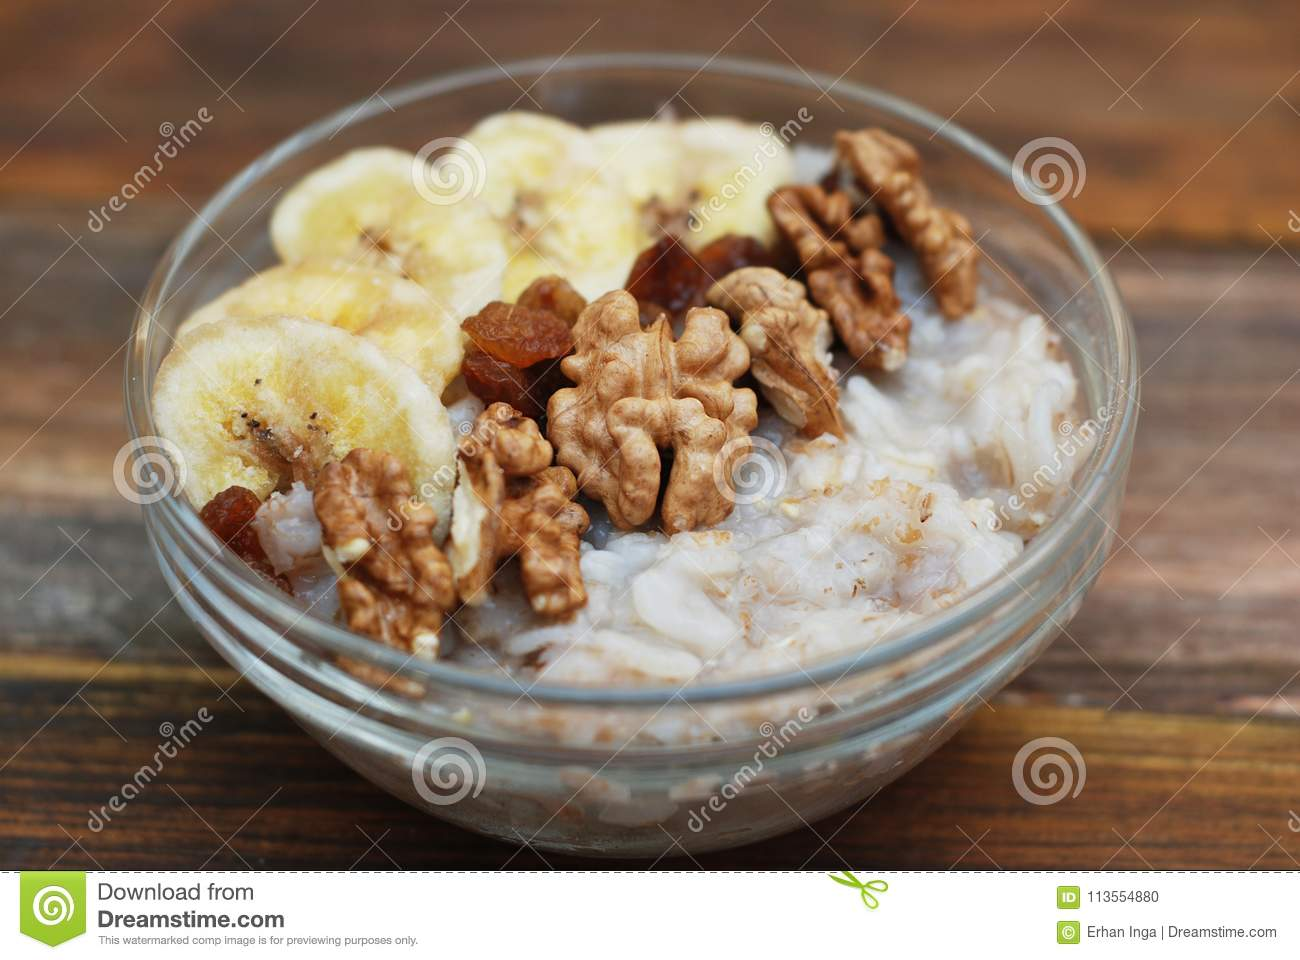 Breakfast with Granola Bowl, Muesli with Oats, Nuts and Dried Fruit, Milk, on Wooden table. Bannana, nuts, fruits. Healthy Breakfa